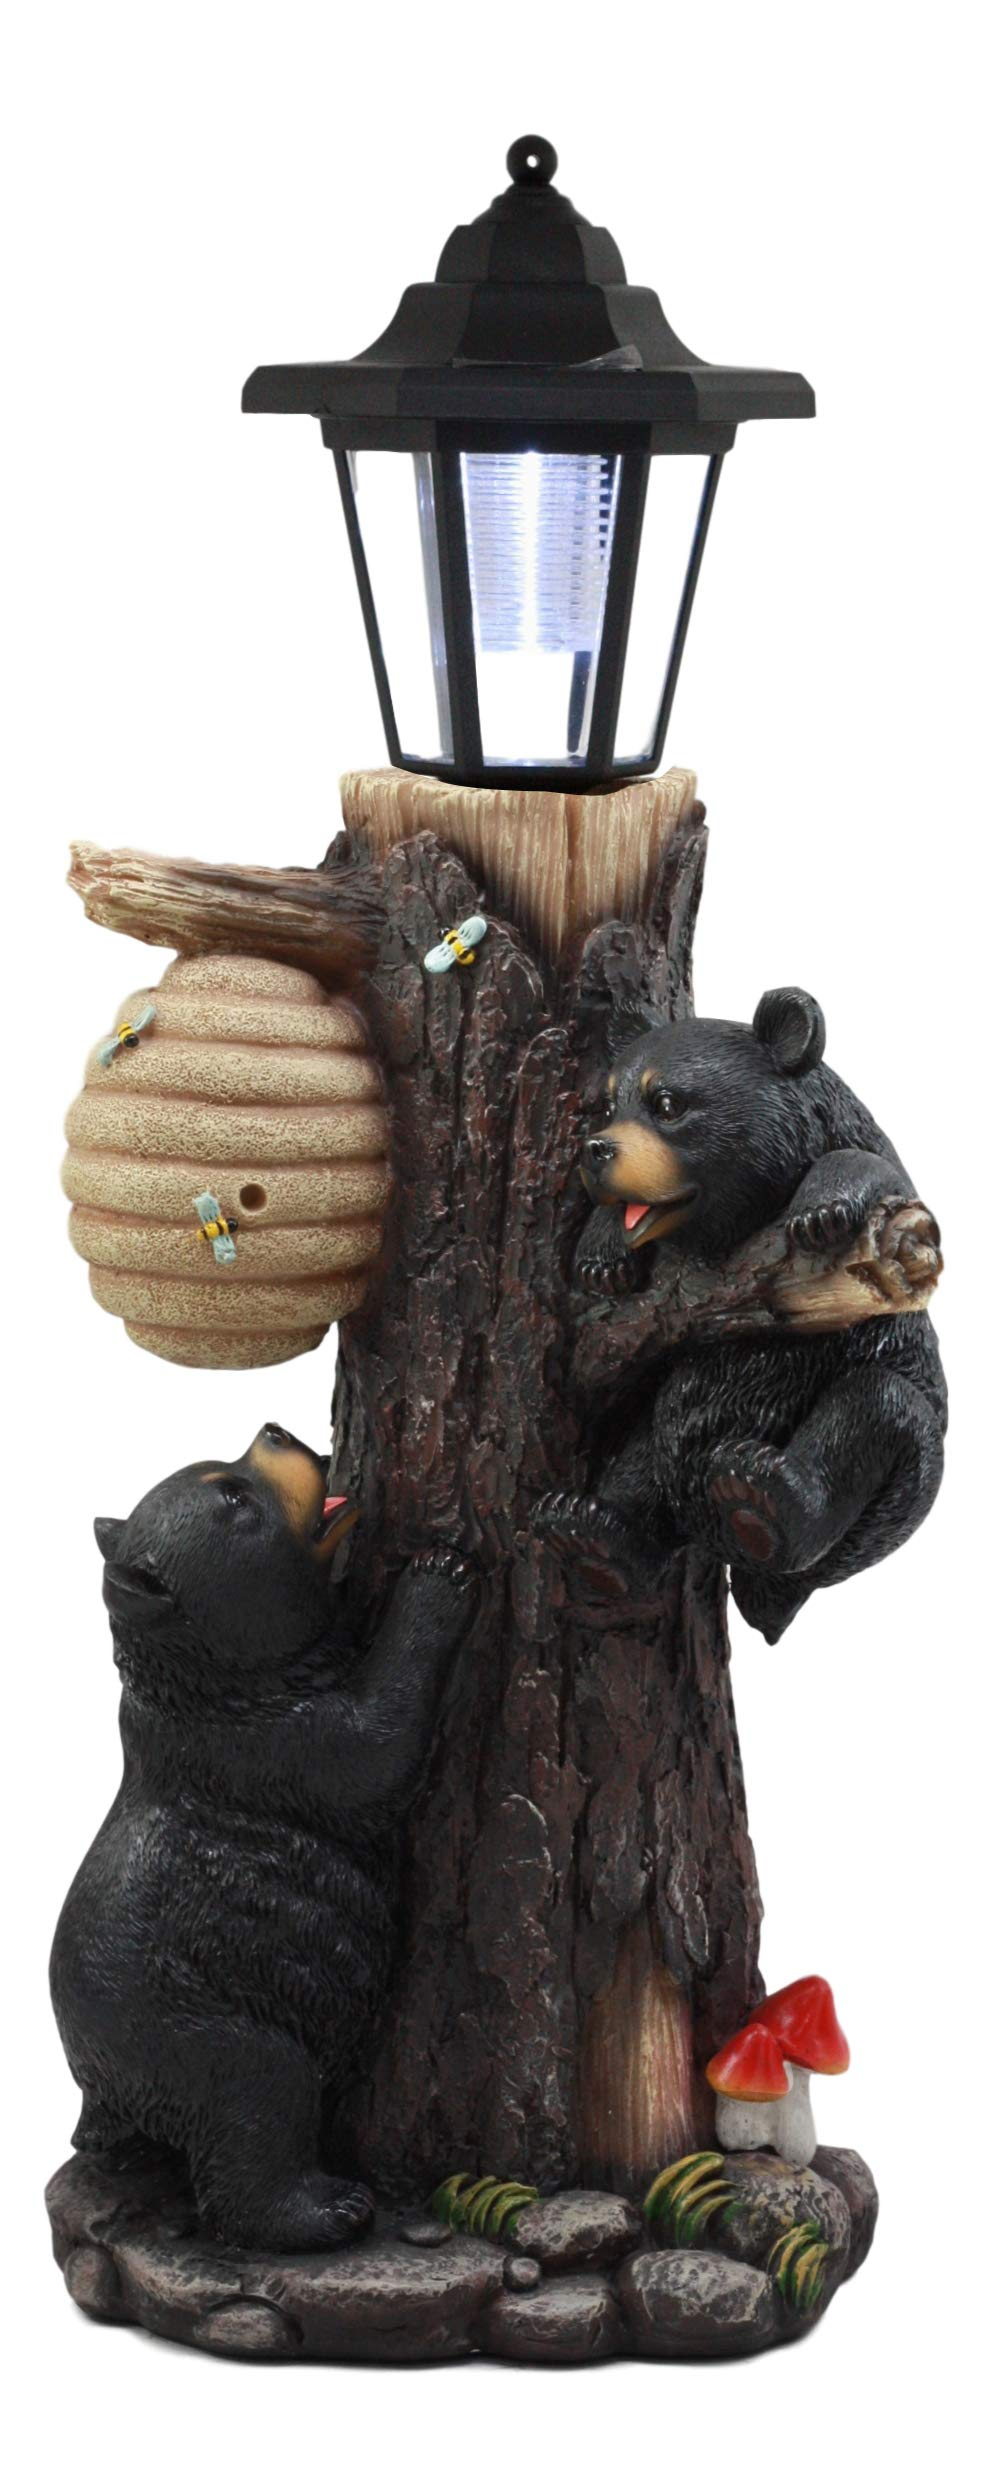 Ebros Large Climbing Black Bear Cubs Reaching for Honeycomb Beehive LED Path Lighter Statue 19''Tall with Solar Lantern Light Welcome Sign Guest Greeter Decor Figurine